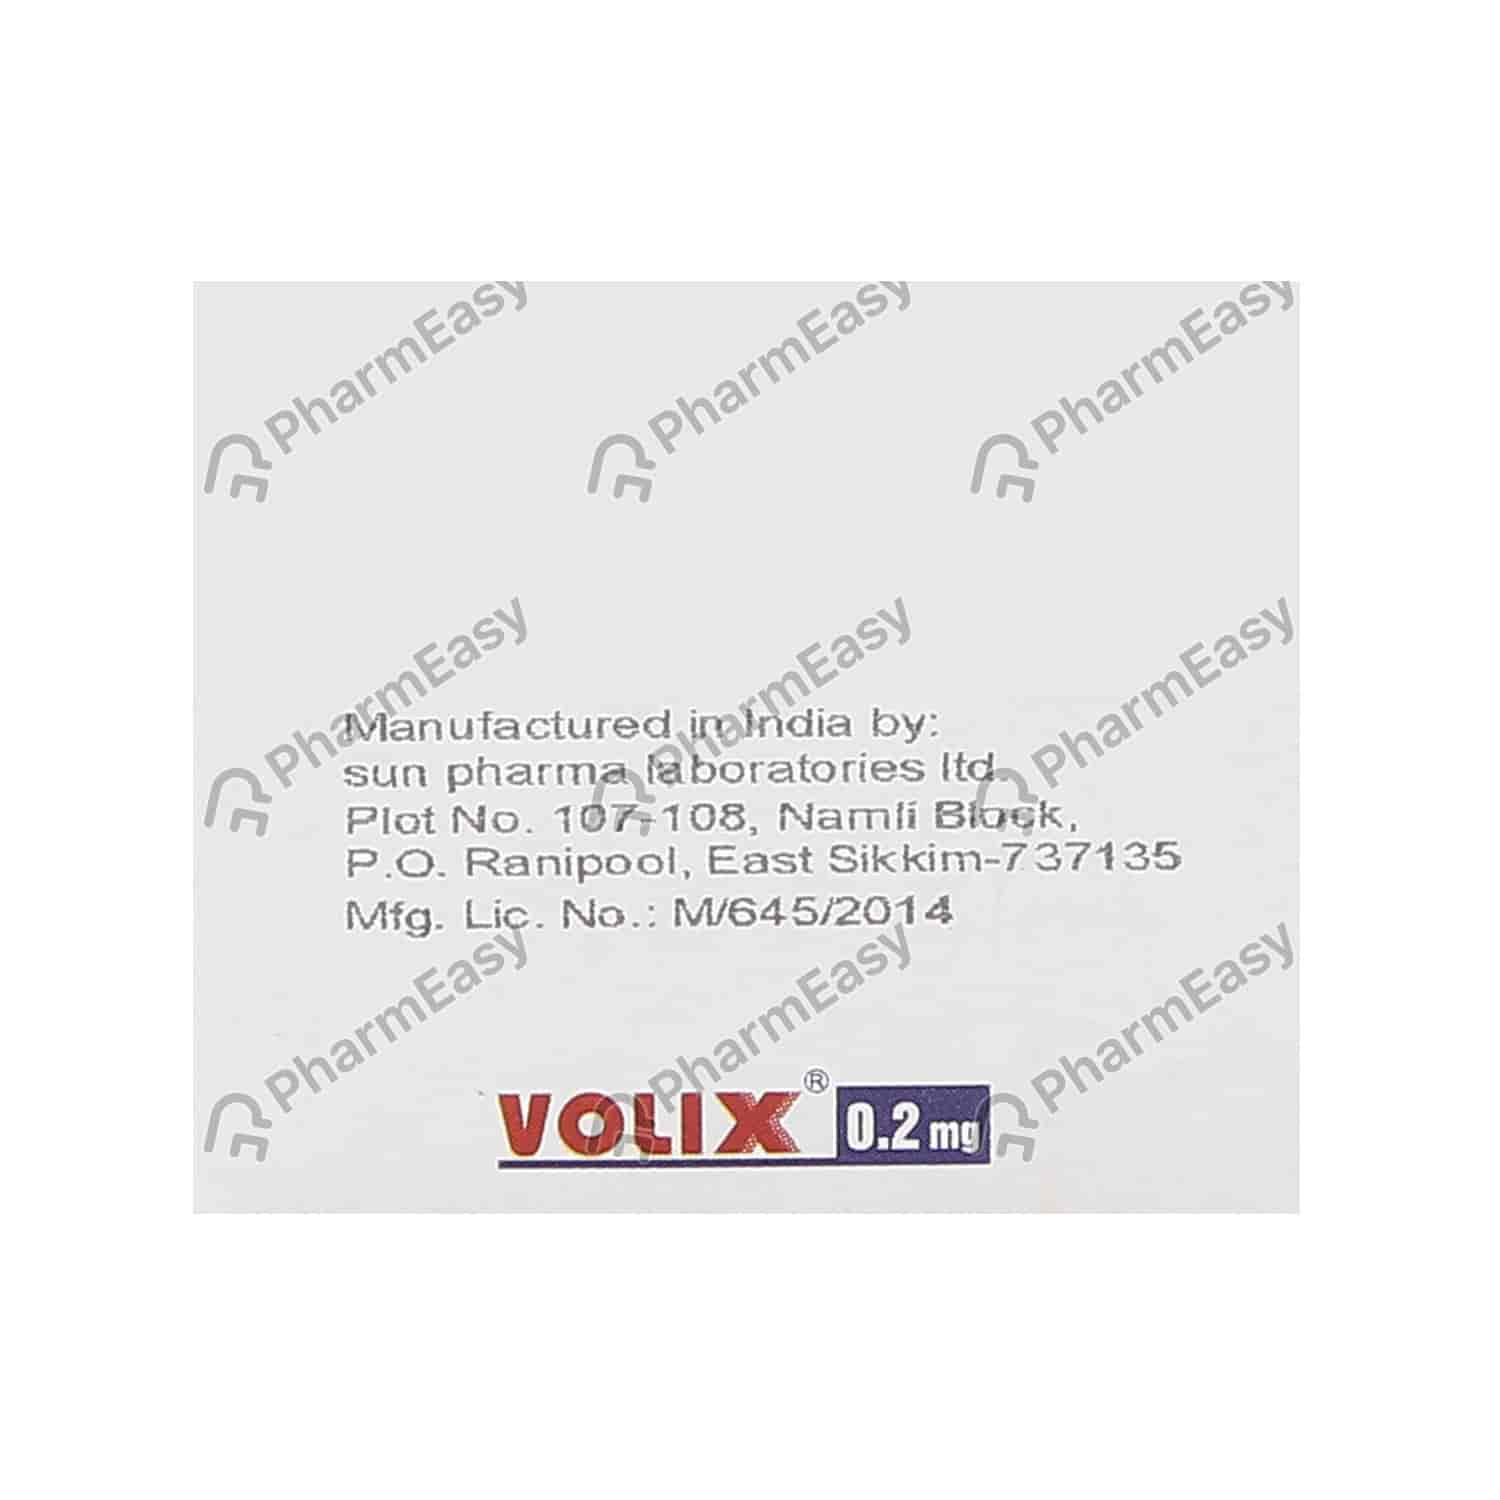 Volix 0.2mg Strip Of 15 Tablets